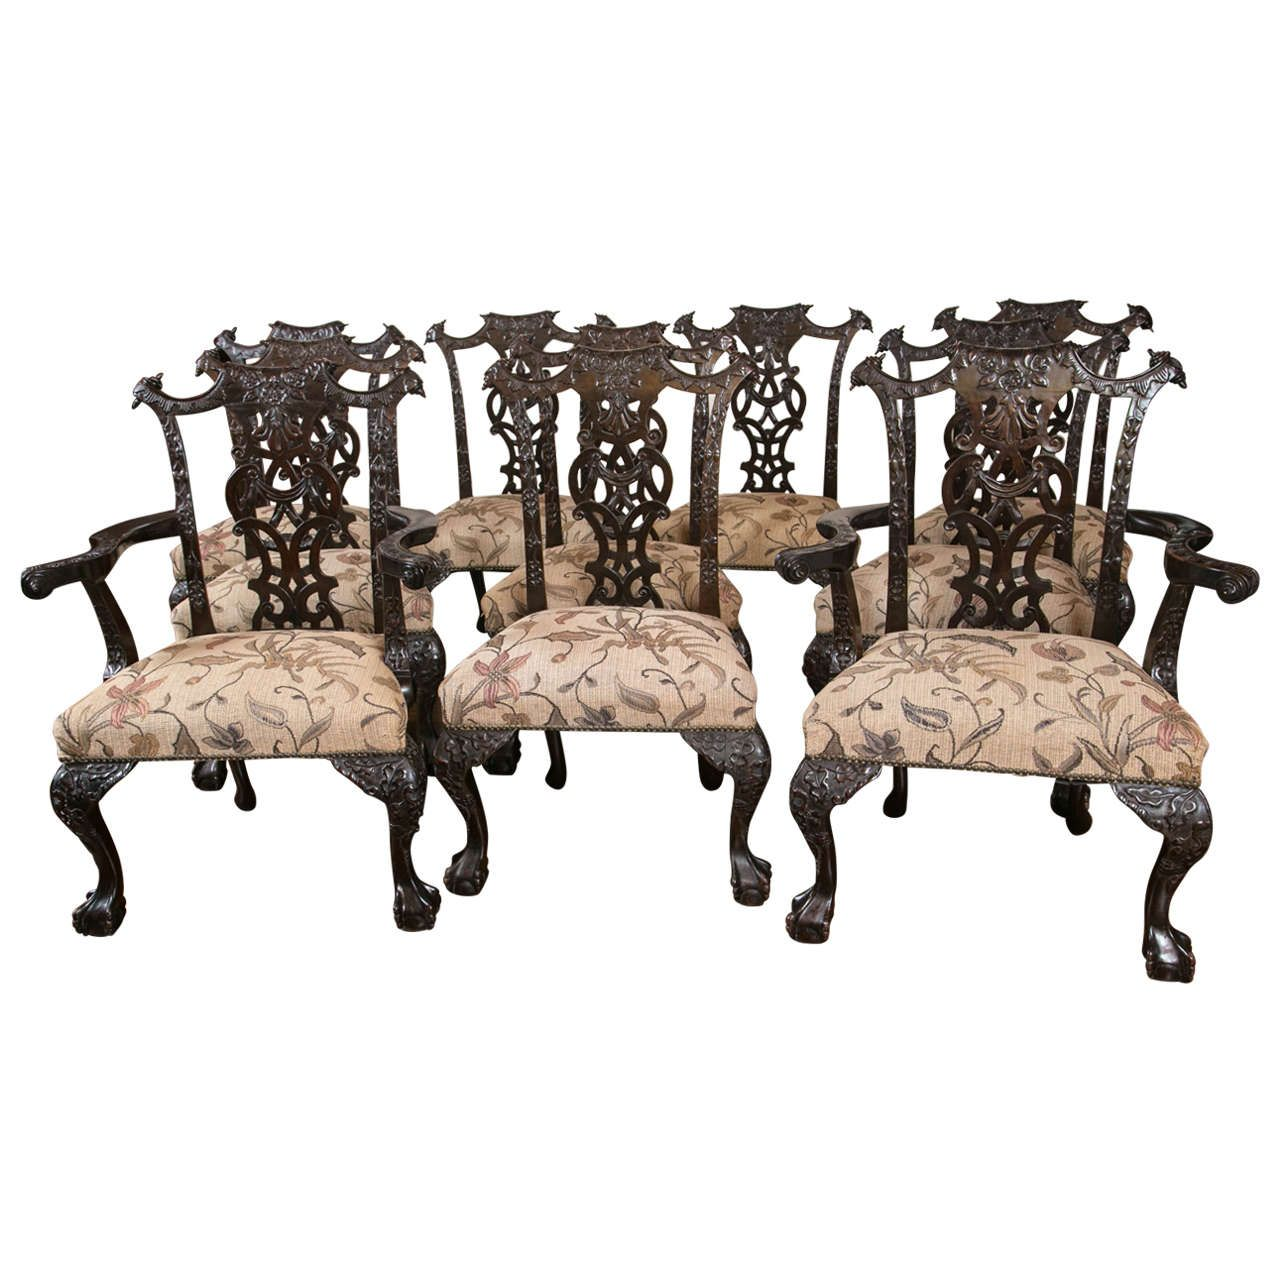 Set of Ten 19th Century Chippendale Style Carved Mahogany Dining Chairs |  From a unique collection - Set Of Ten Exceptional 19th Cent.Chippendale Style Carved Mahogany